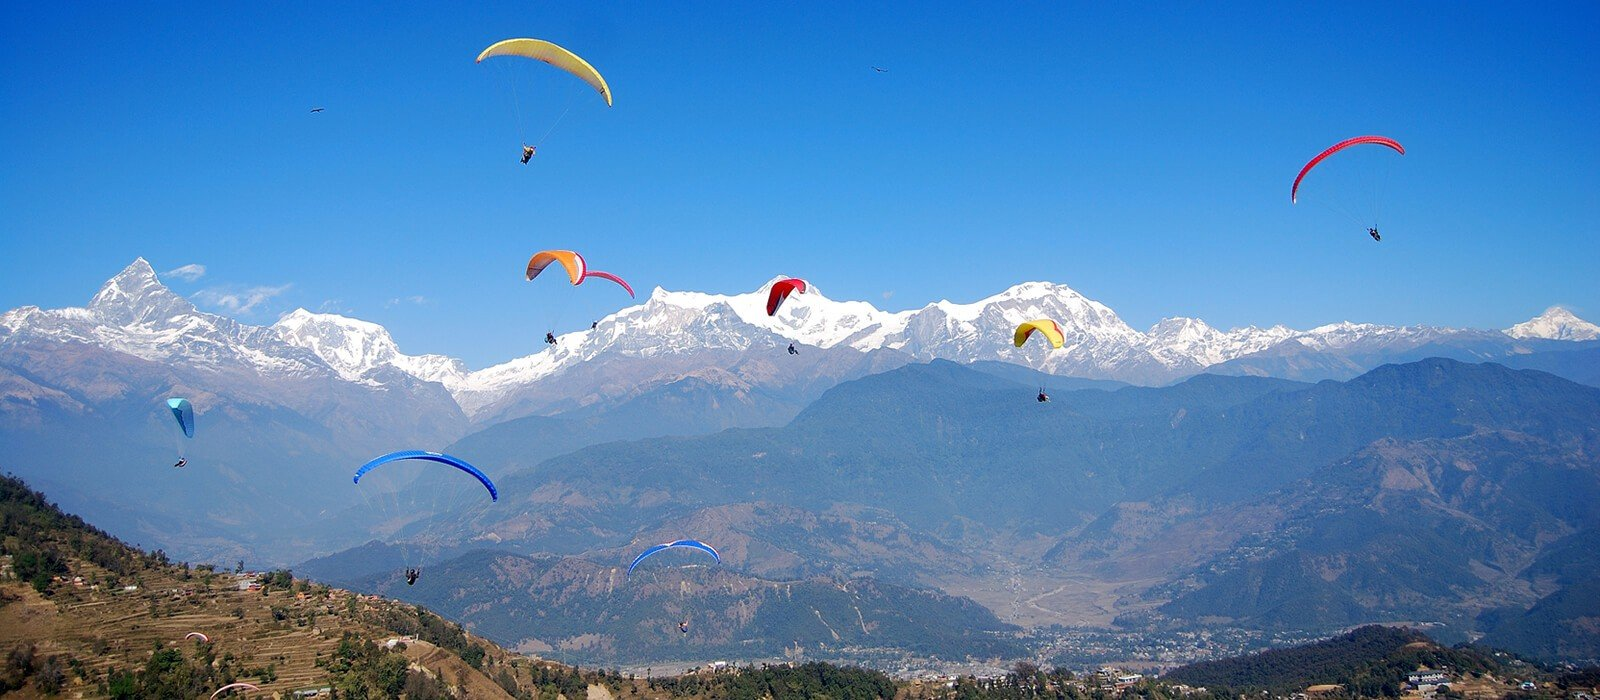 Top 5 Adventure Activities in Nepal